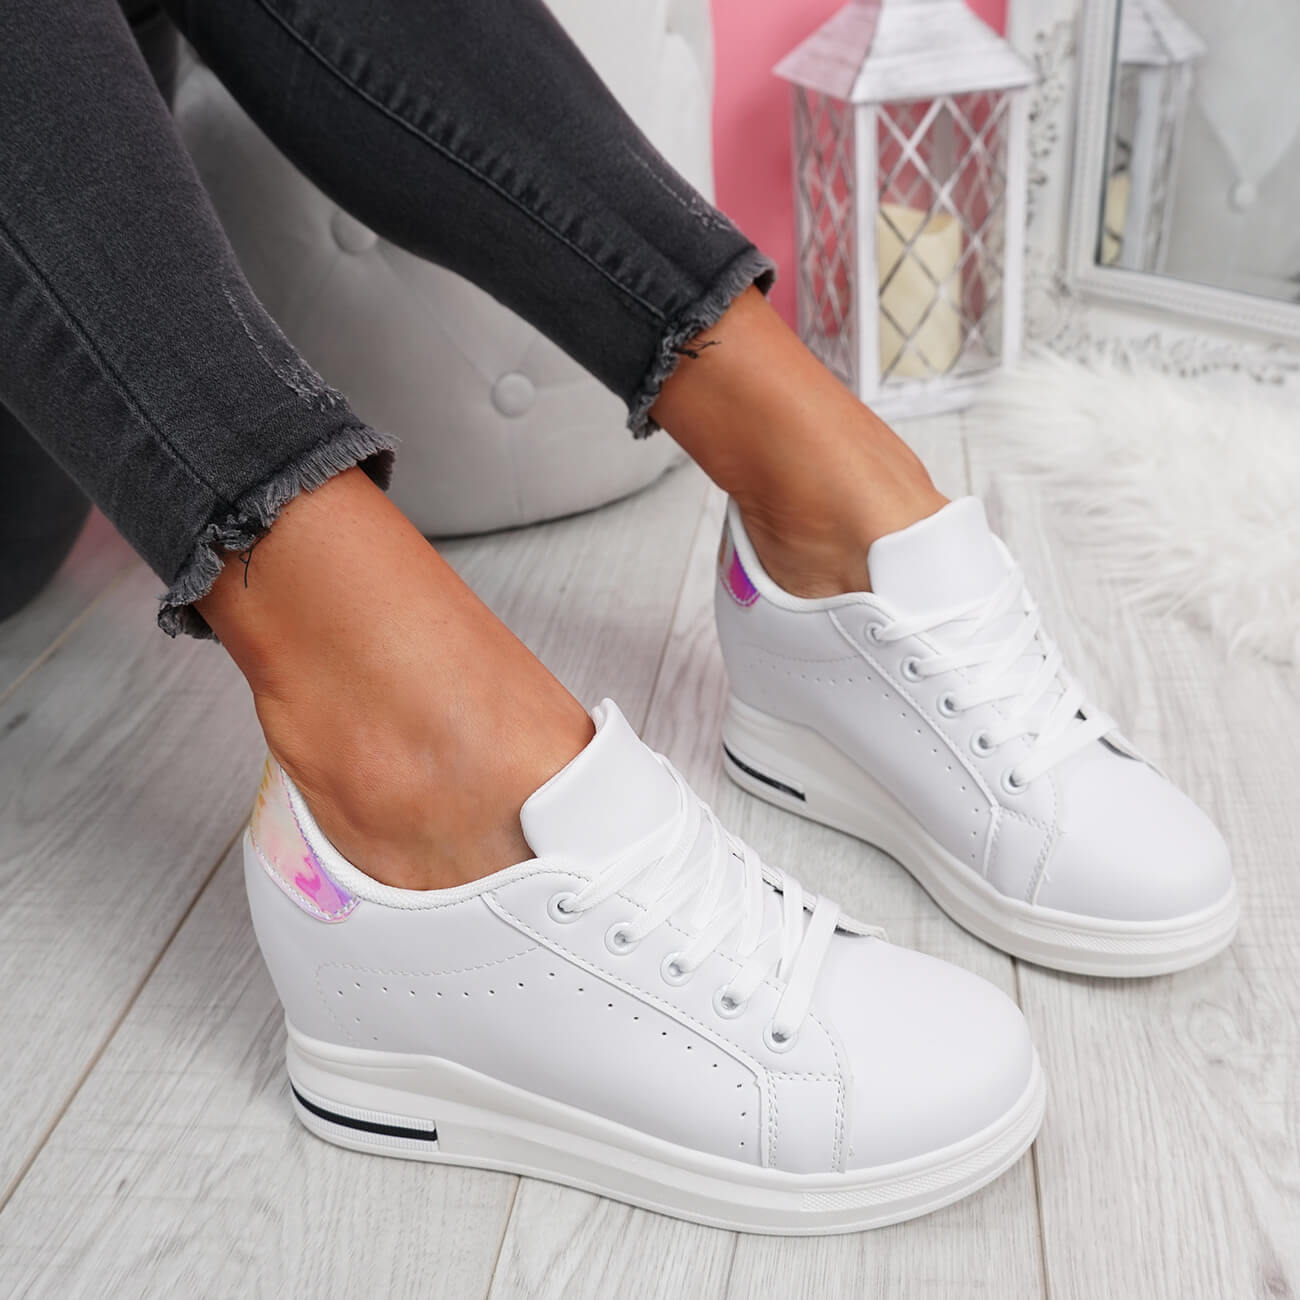 WOMENS-LADIES-LACE-UP-WEDGE-TRAINERS-HEEL-SNEAKERS-SHINY-PARTY-WOMEN-SHOES thumbnail 11